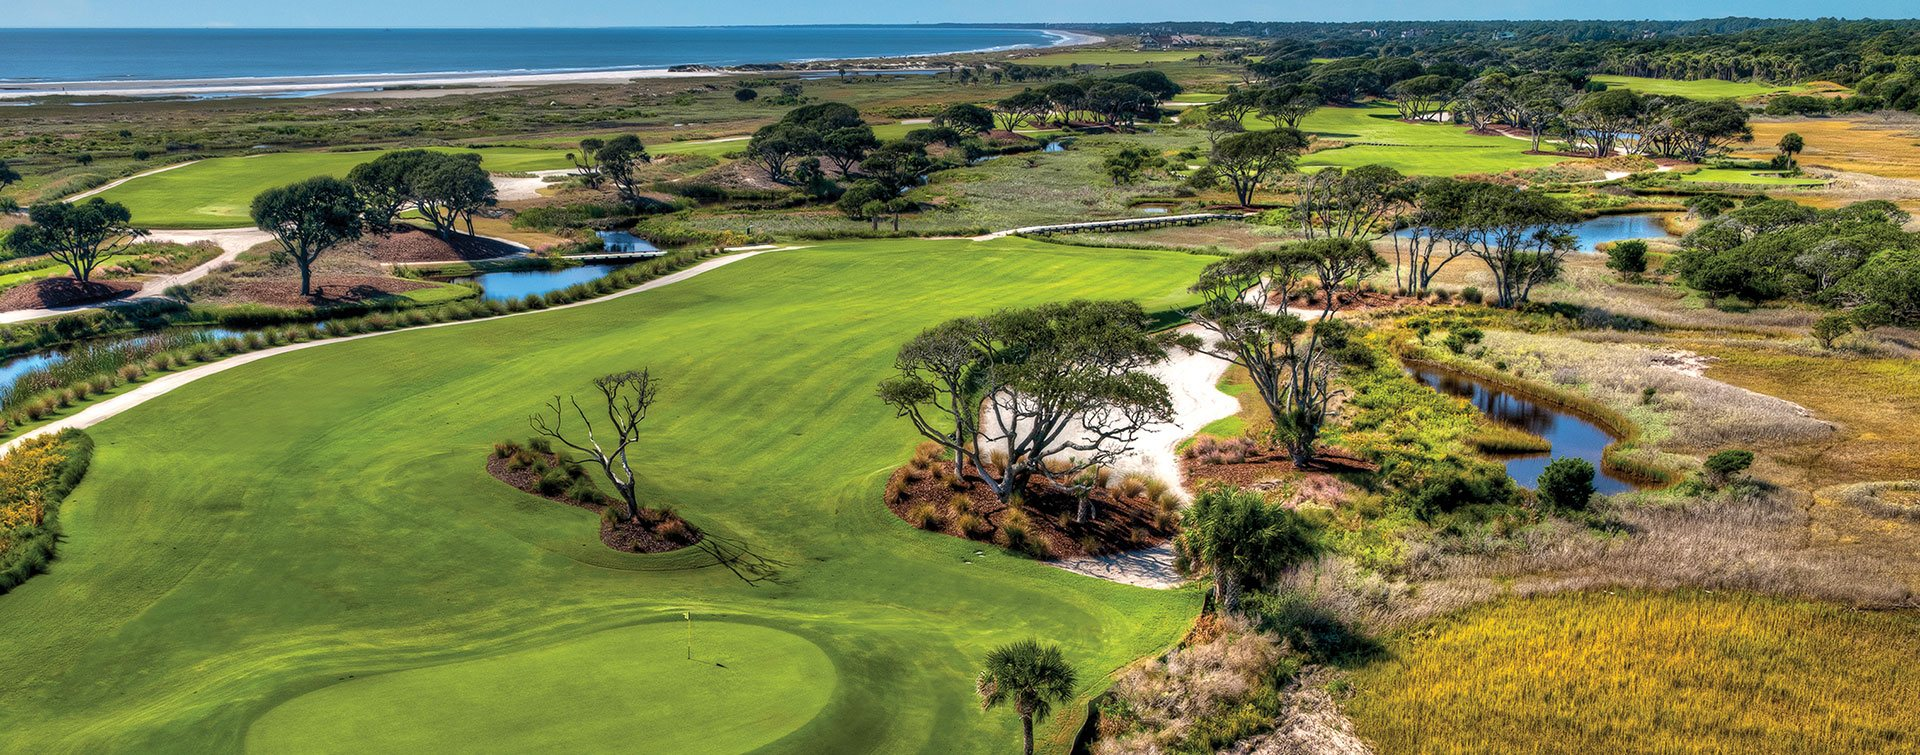 Strictly speaking, Kiawah Island's Ocean Course is not a links. But it's still a spectacular bucket-list golf course. (Kiawah Island Resort)